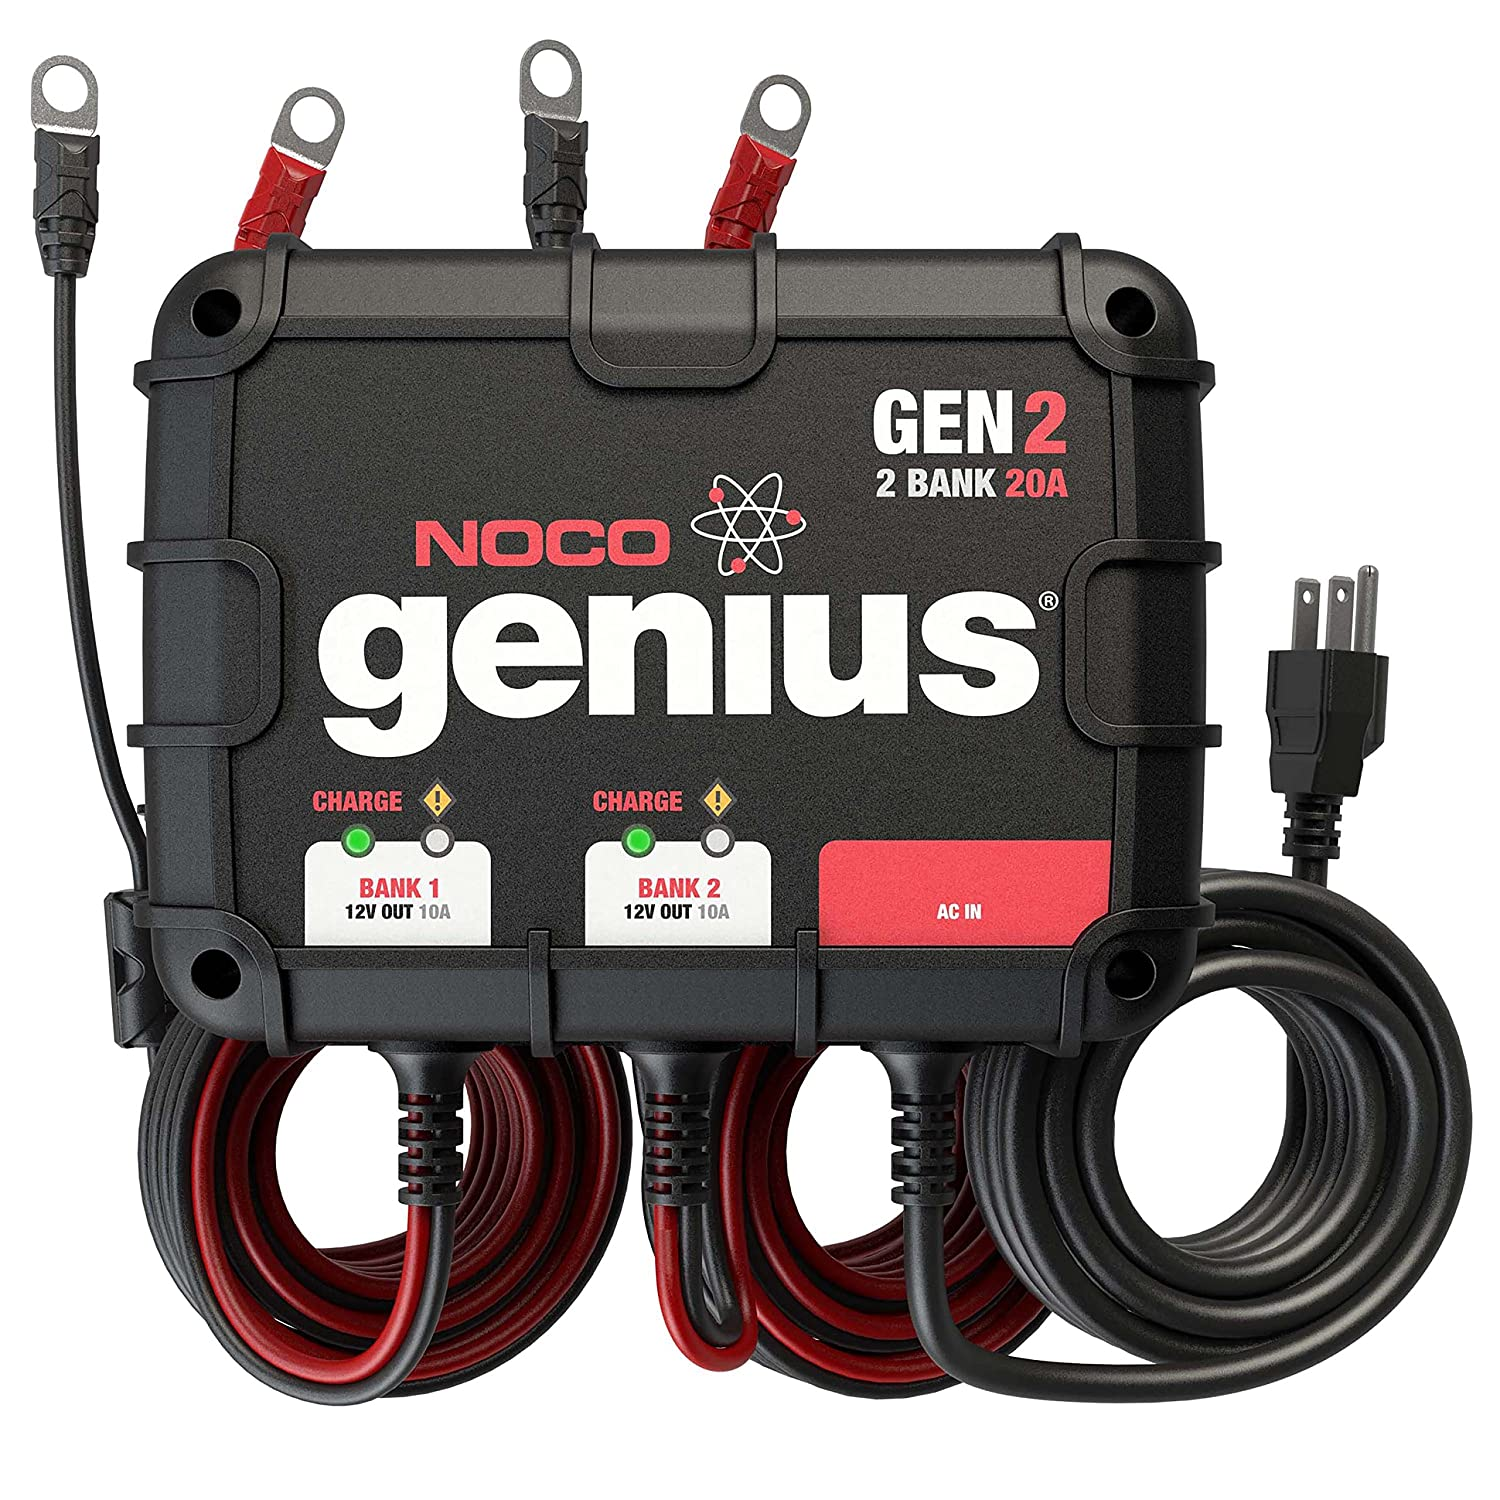 Channel Bank Wiring Diagram Noco Genius Gen2 20 Amp 2 Waterproof Smart On Board Battery Charger Automotive